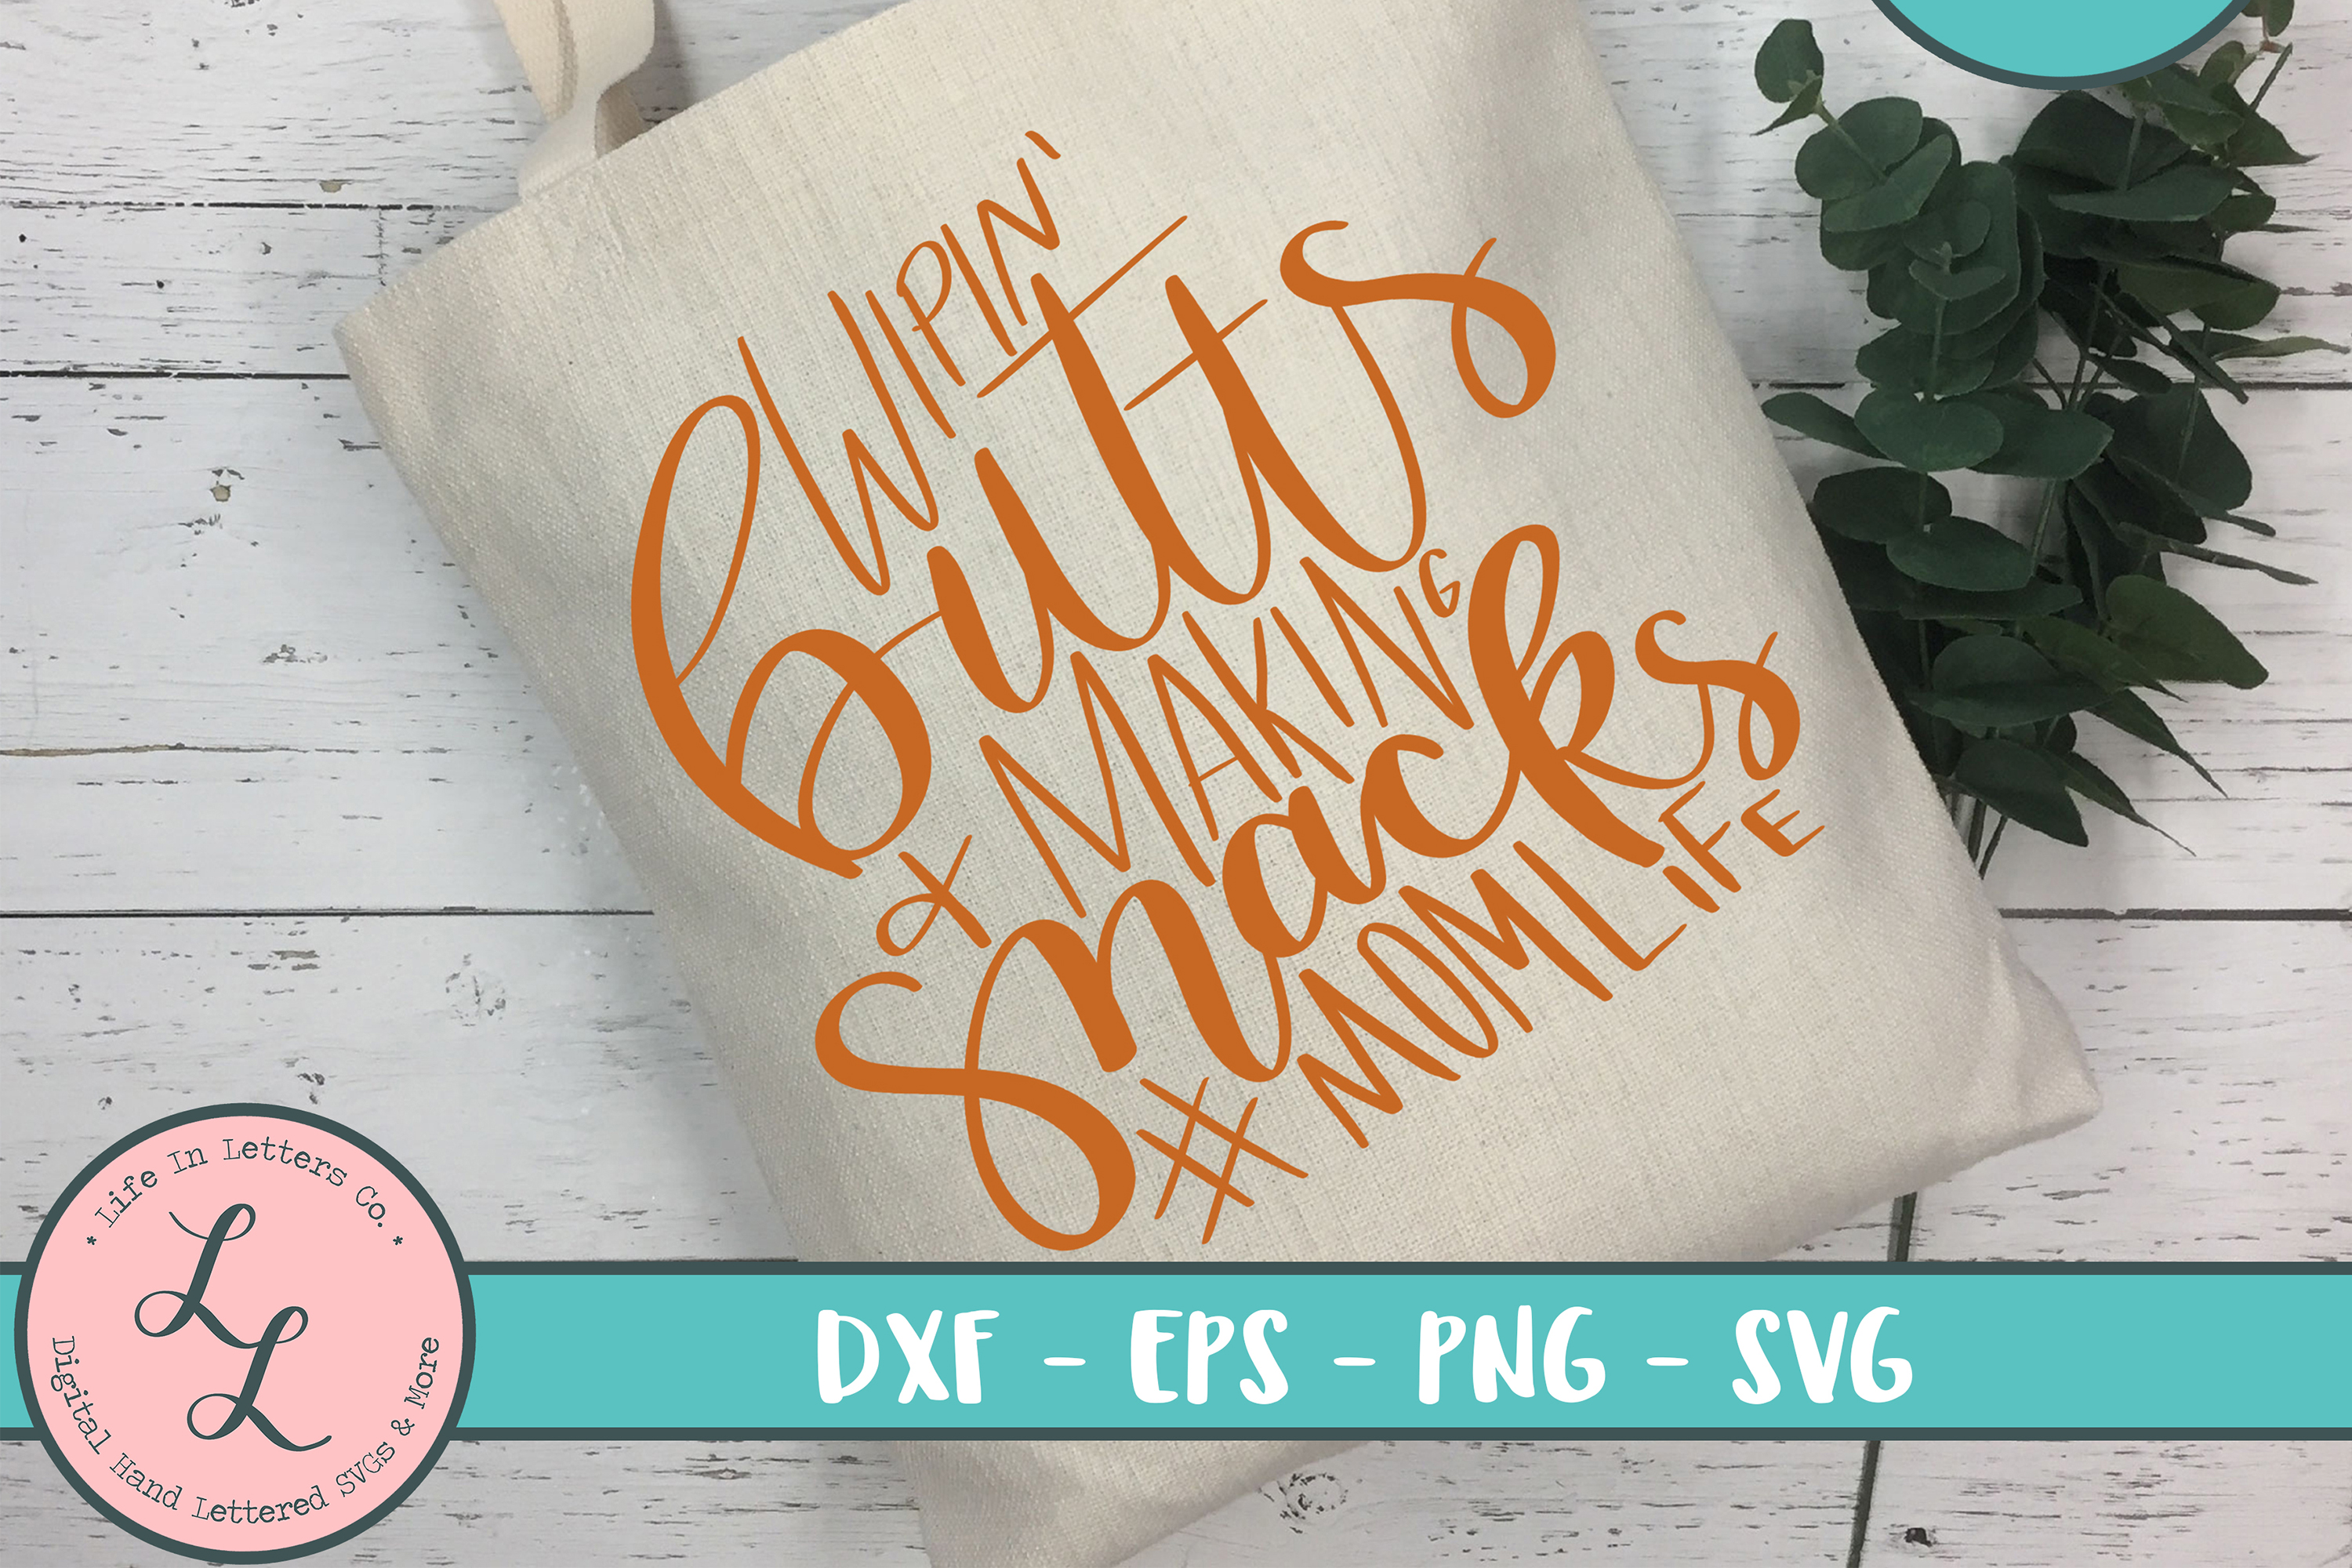 Wipin' Butts & Making Snacks - Cut File, SVG, PNG, EPS, DXF example image 1